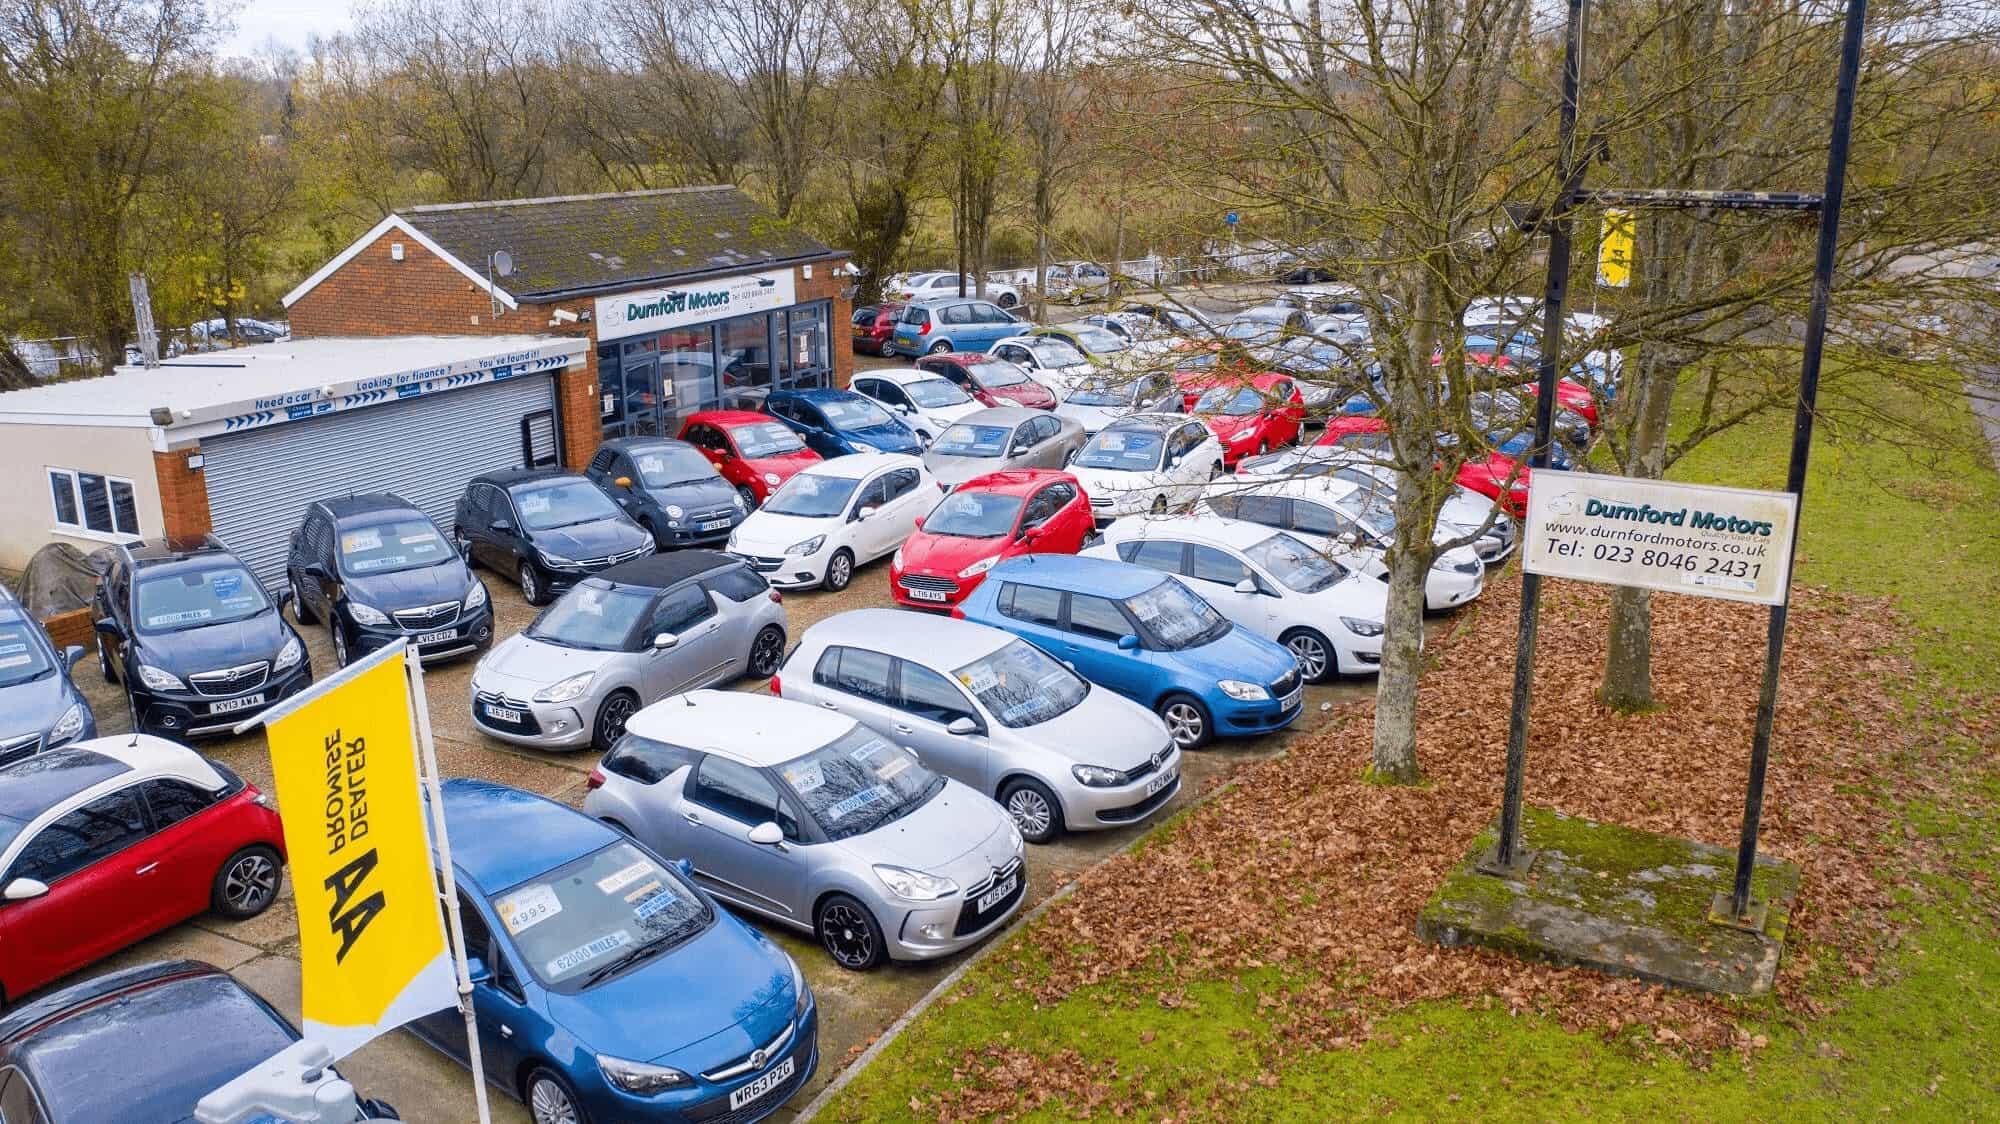 Welcome To Durnford Motors - Durnford Motors